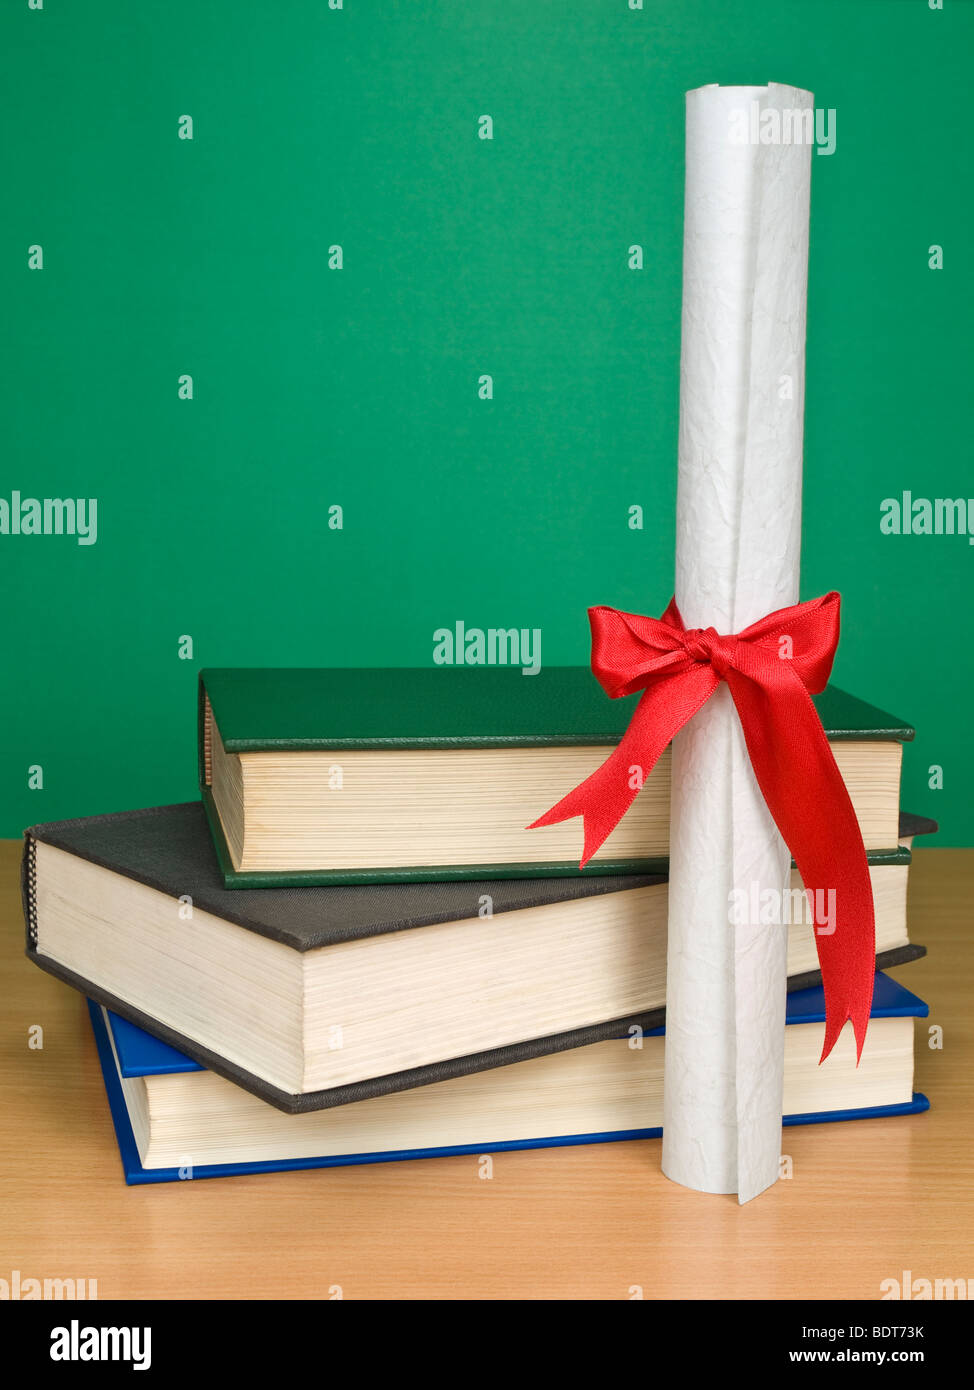 A pile of books and a diploma. Blank chalkboard on the background. - Stock Image